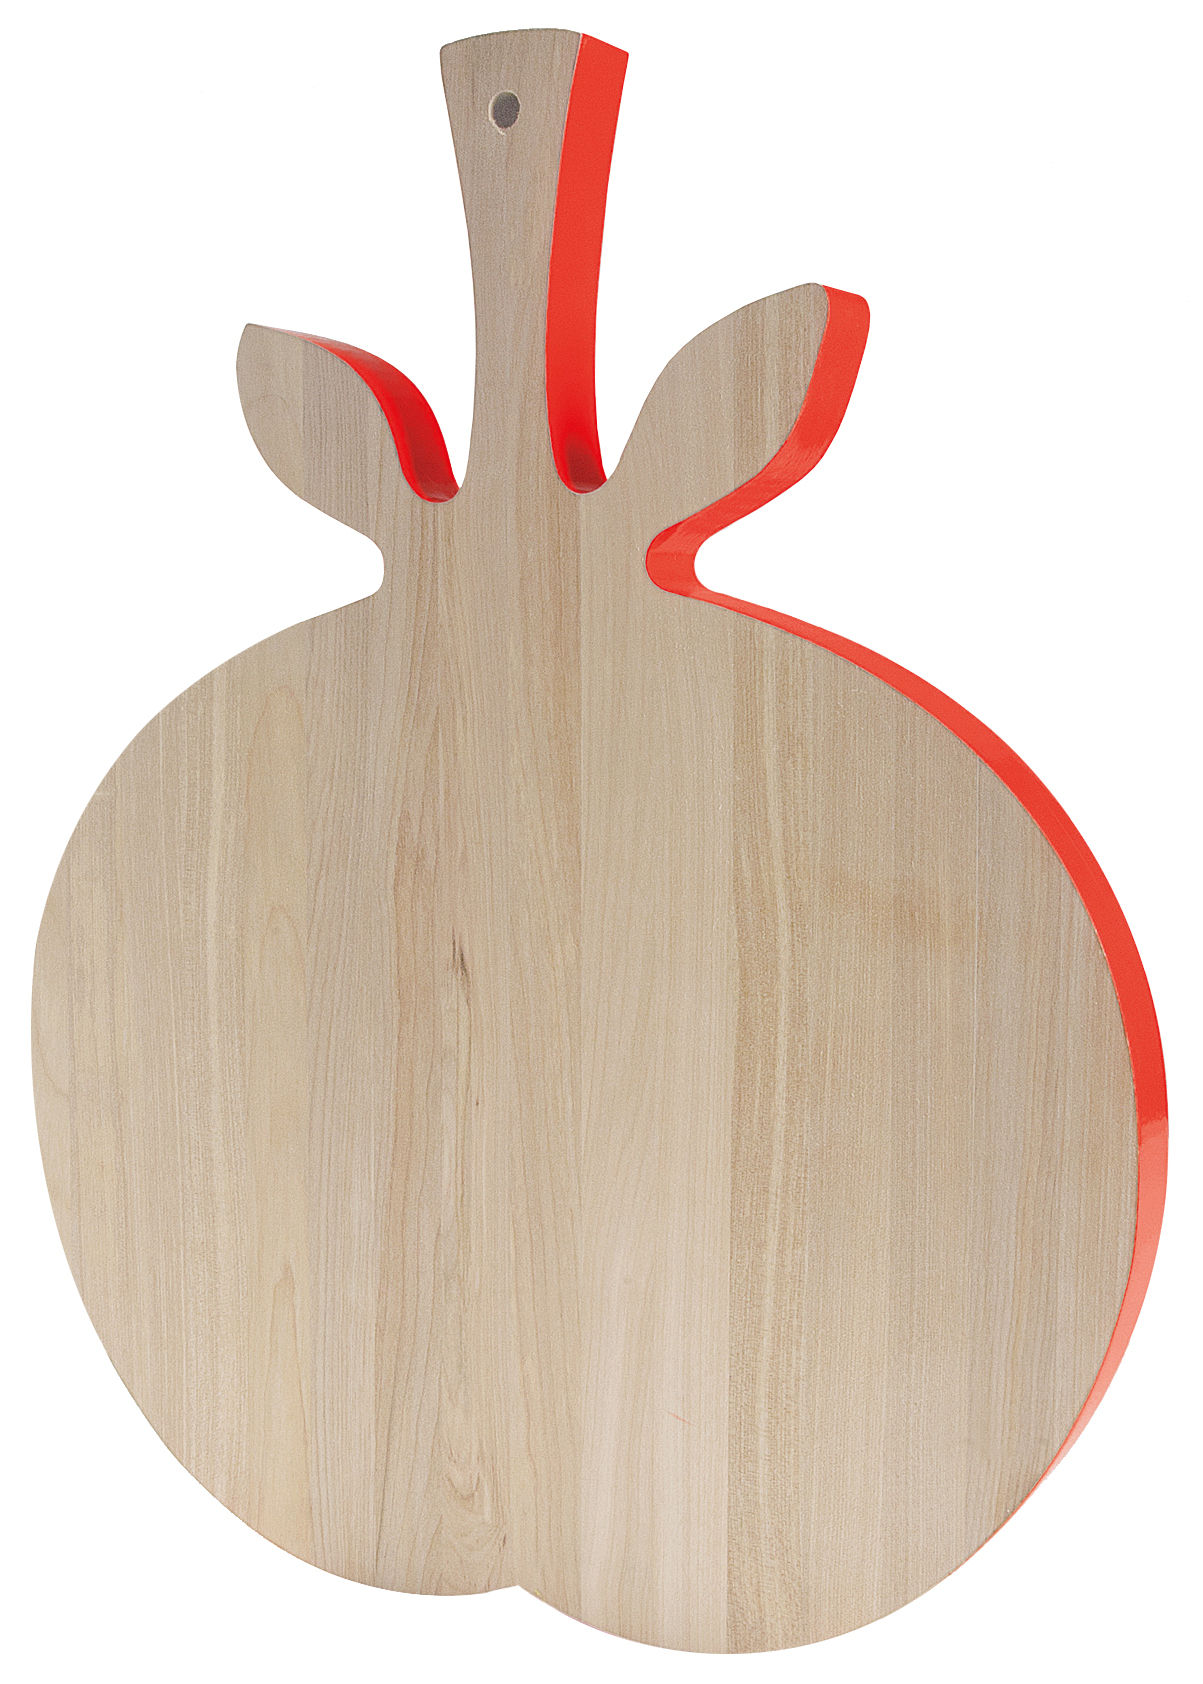 Kitchenware - Kitchen Equipment - Vege-Table Chopping board by Seletti - Tomato / Red - Birch